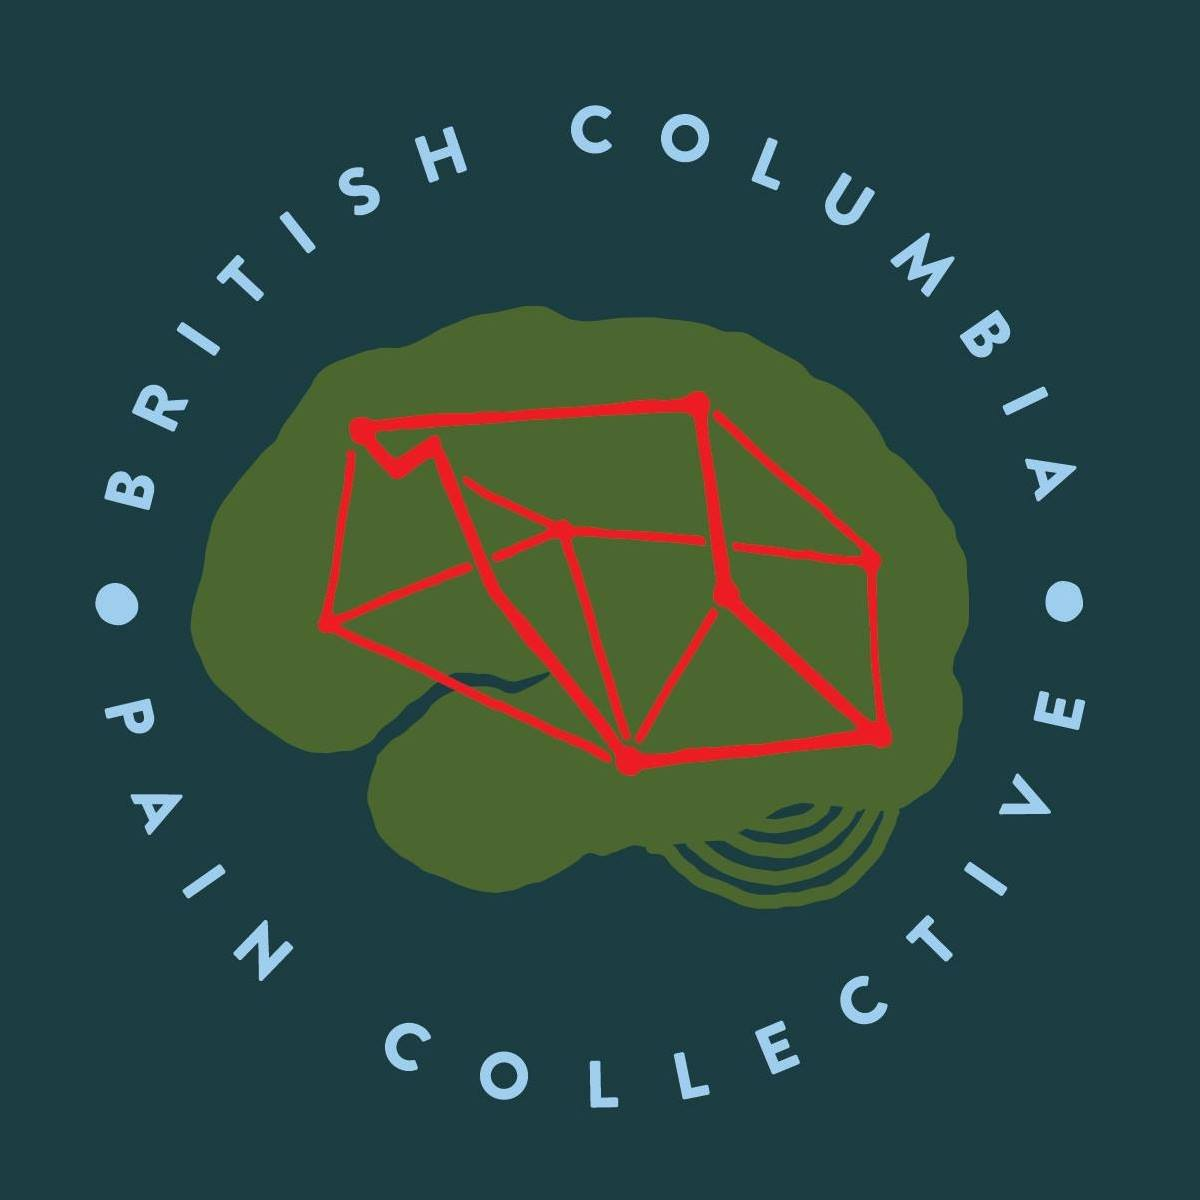 British Columbia Pain Collective